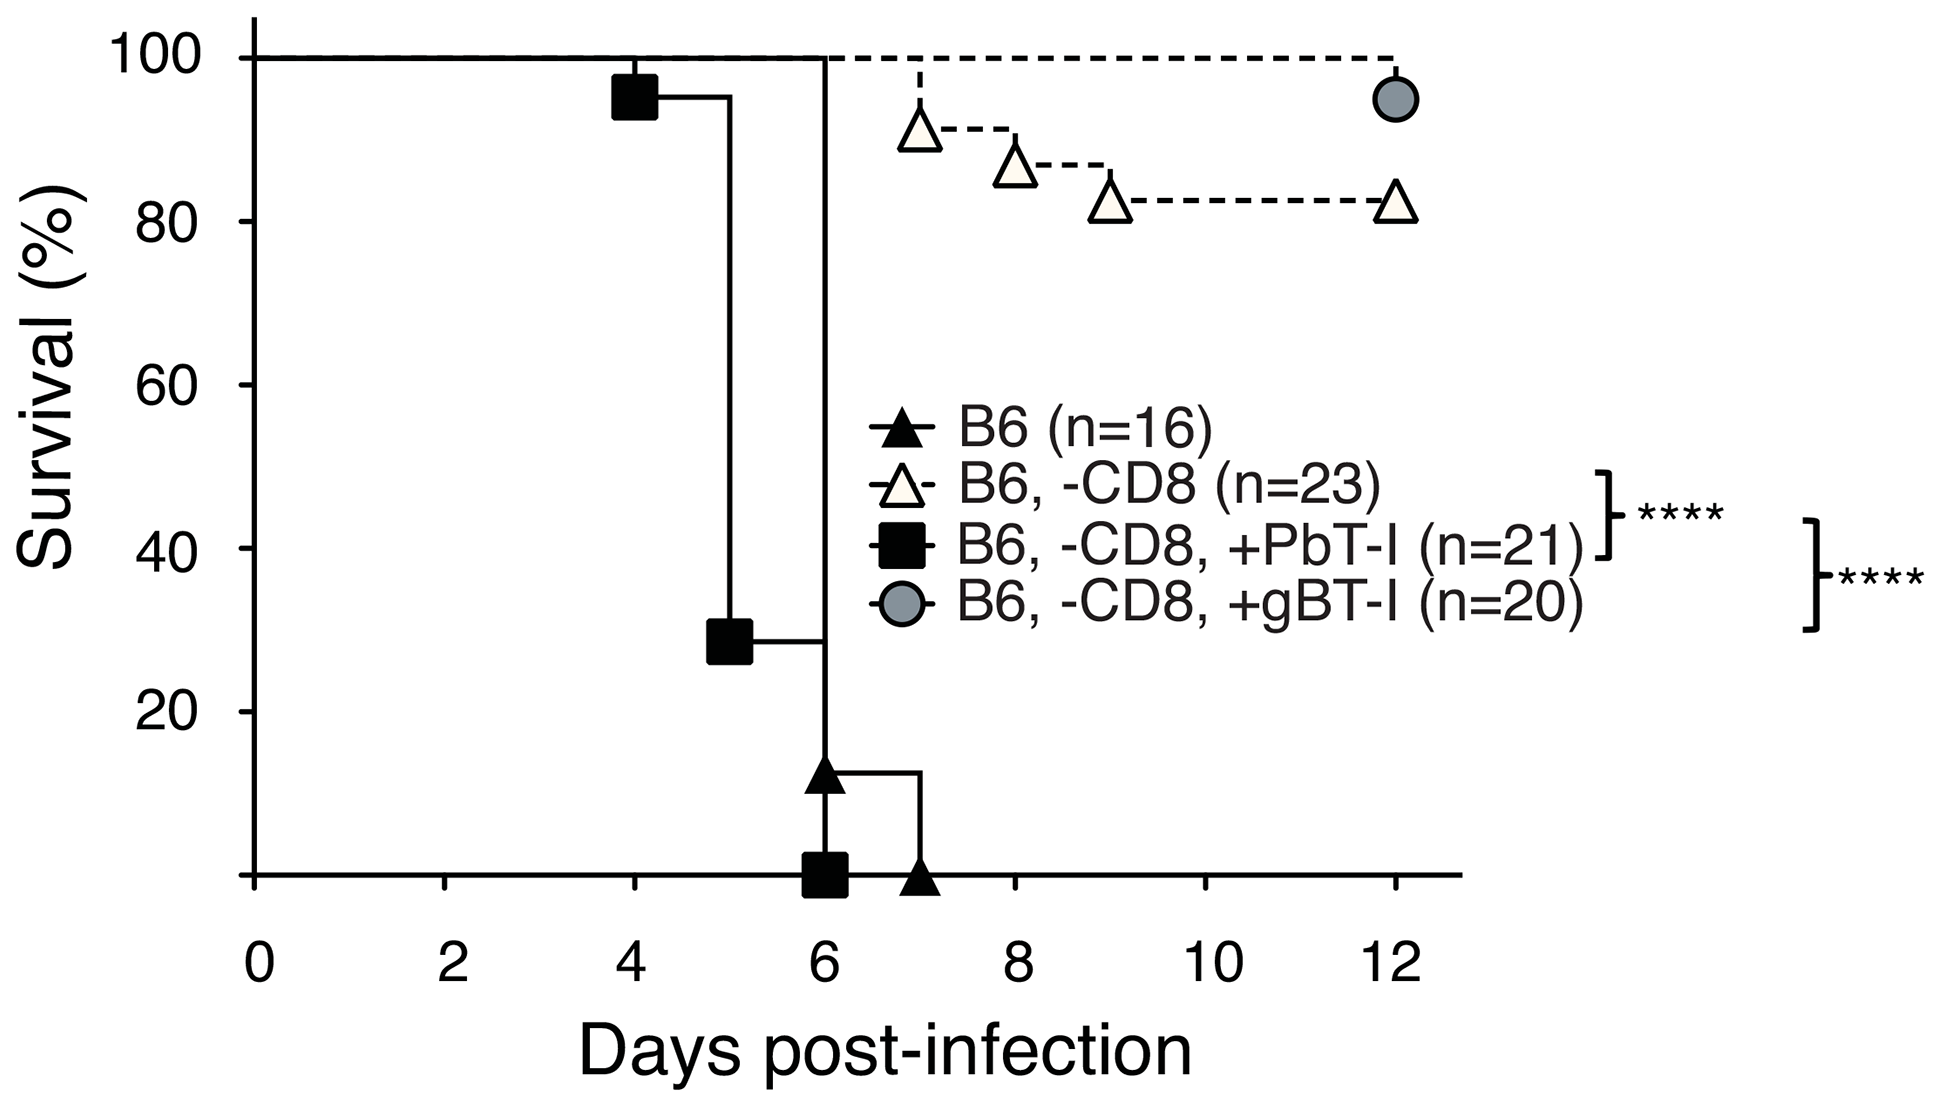 PbT-I cells induce ECM in mice lacking endogenous CD8<sup>+</sup> T cells.